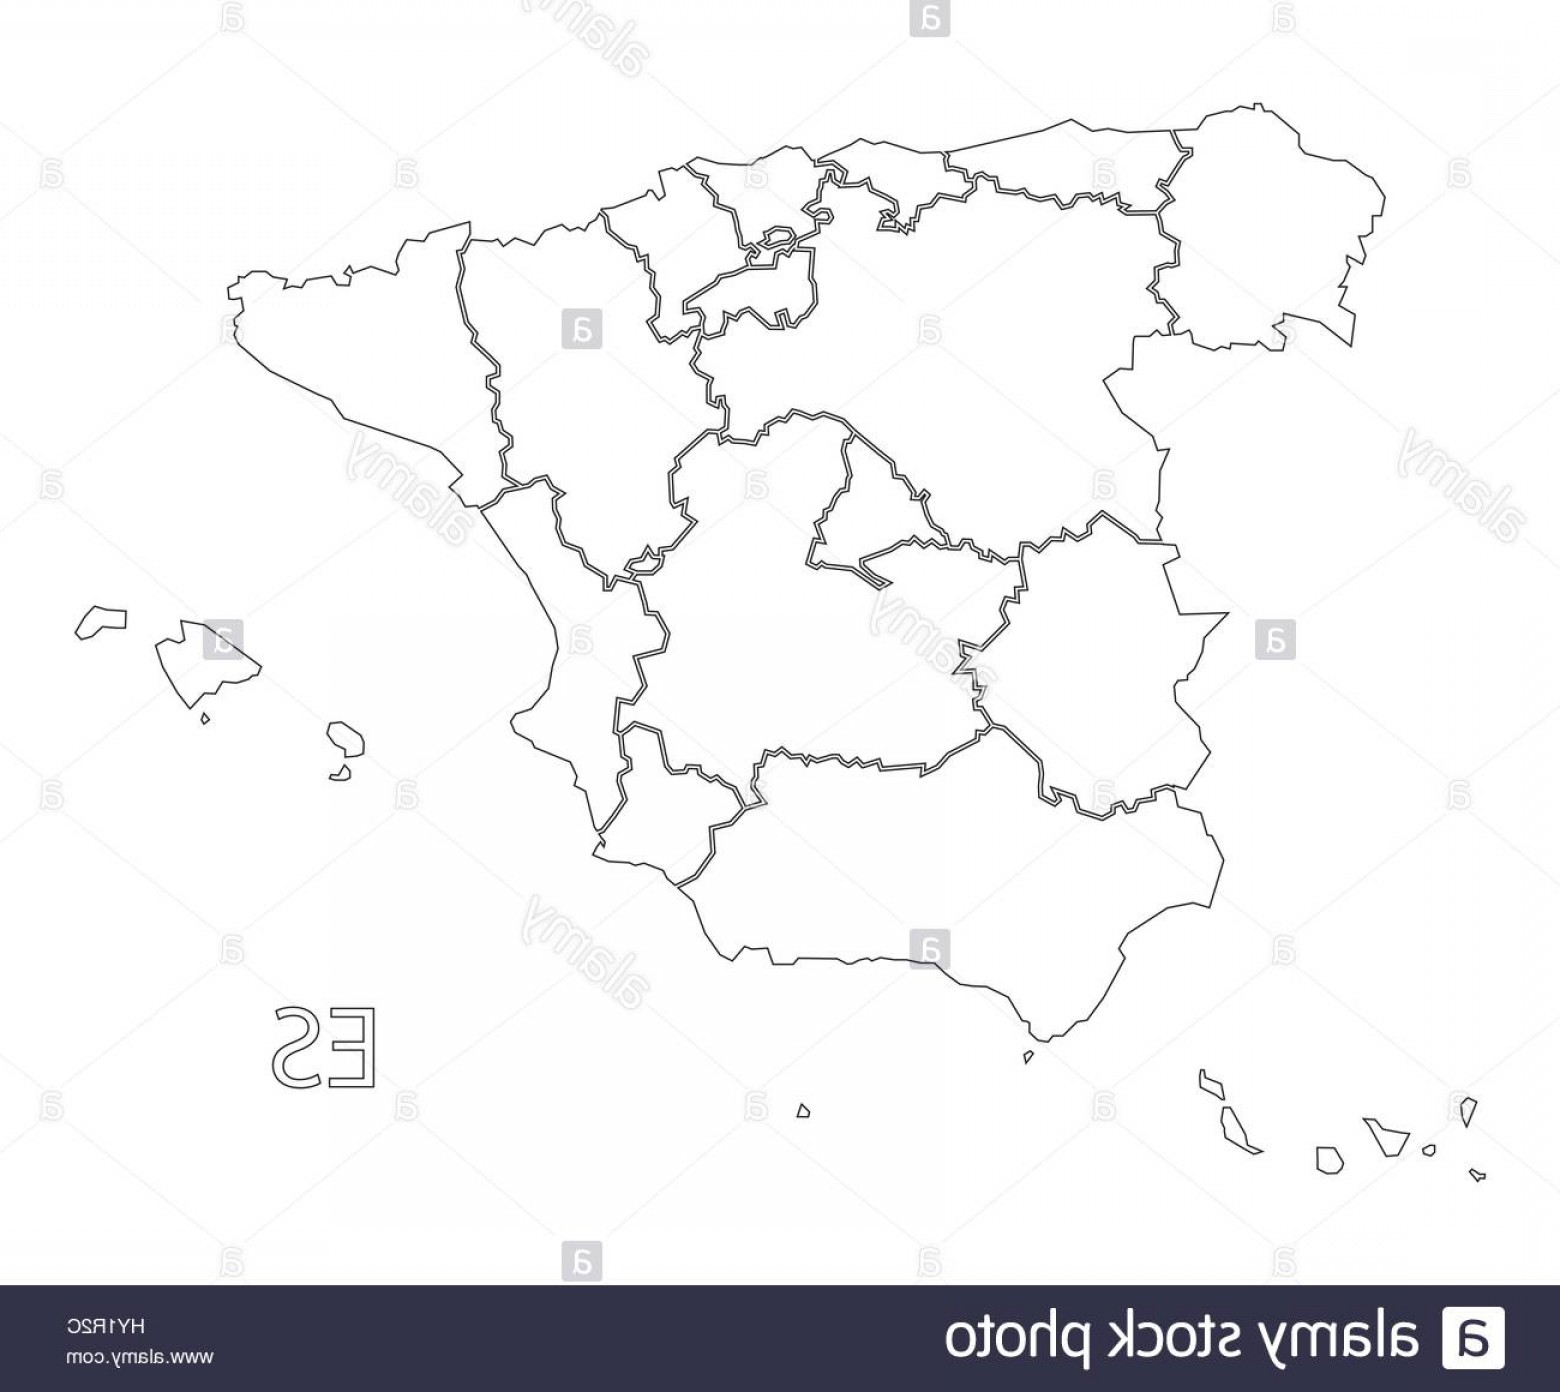 Spain Outline Vector: Stock Photo Spain Outline Silhouette Map Illustration With Provinces